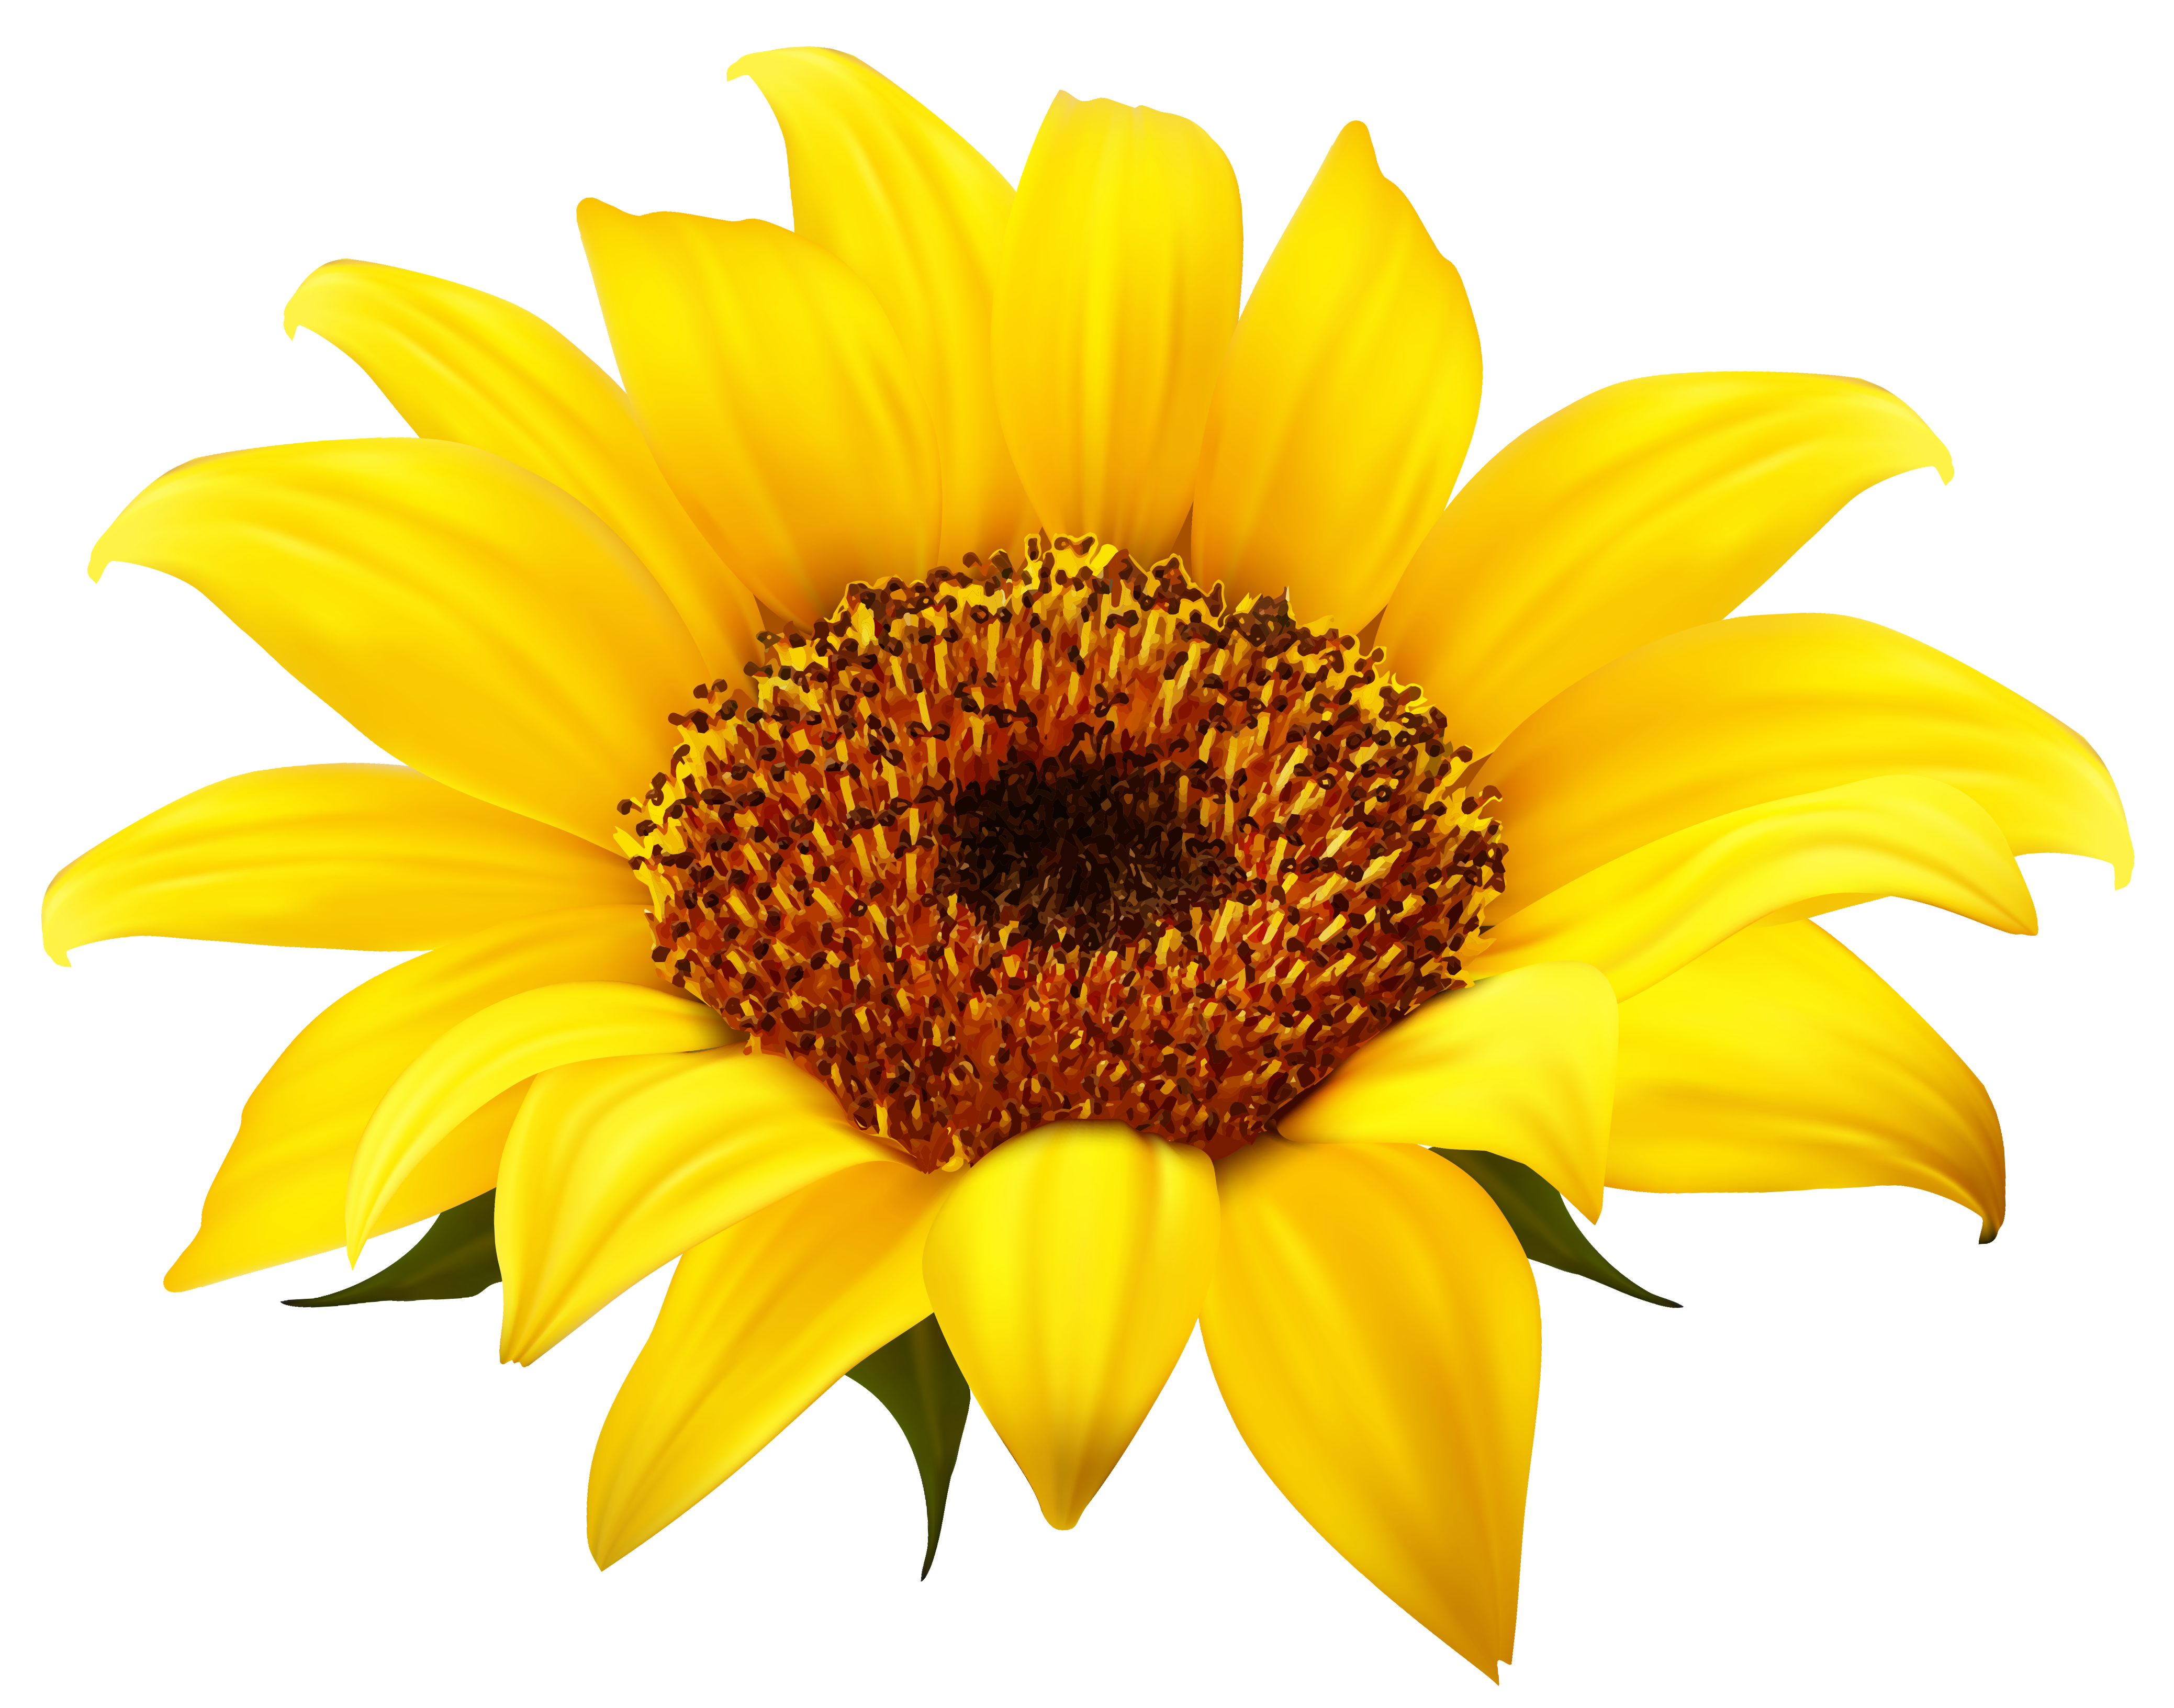 Happy sunflower clipart free clipart images clipartbold